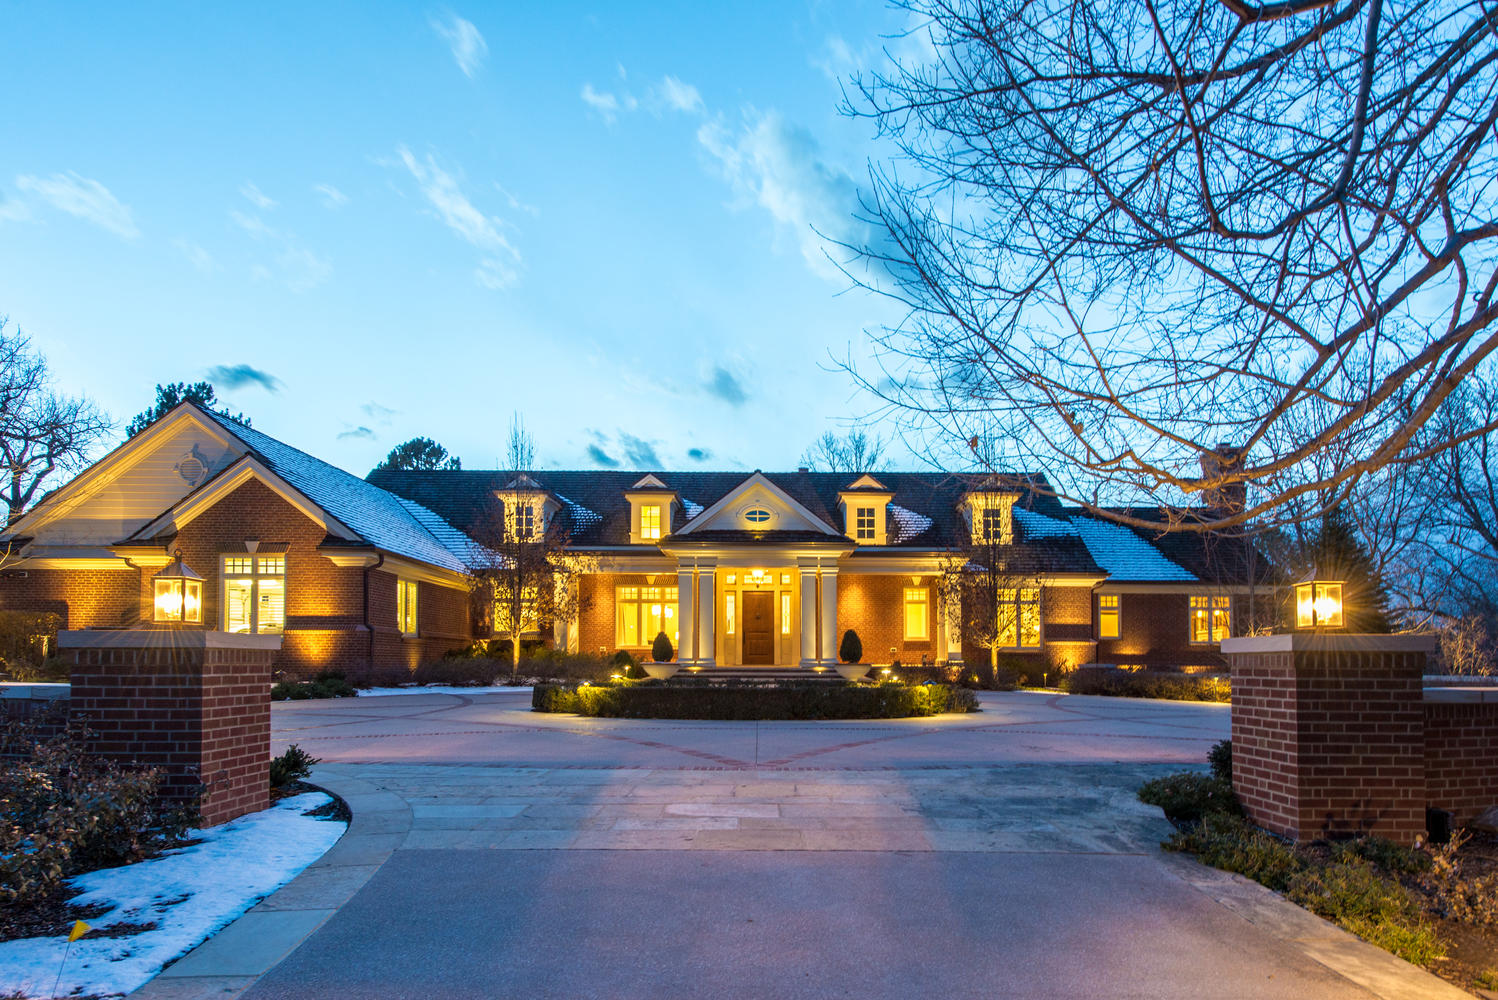 Single Family Home for Sale at 14 Cherry Hills Drive Cherry Hills Village, Colorado, 80113 United States